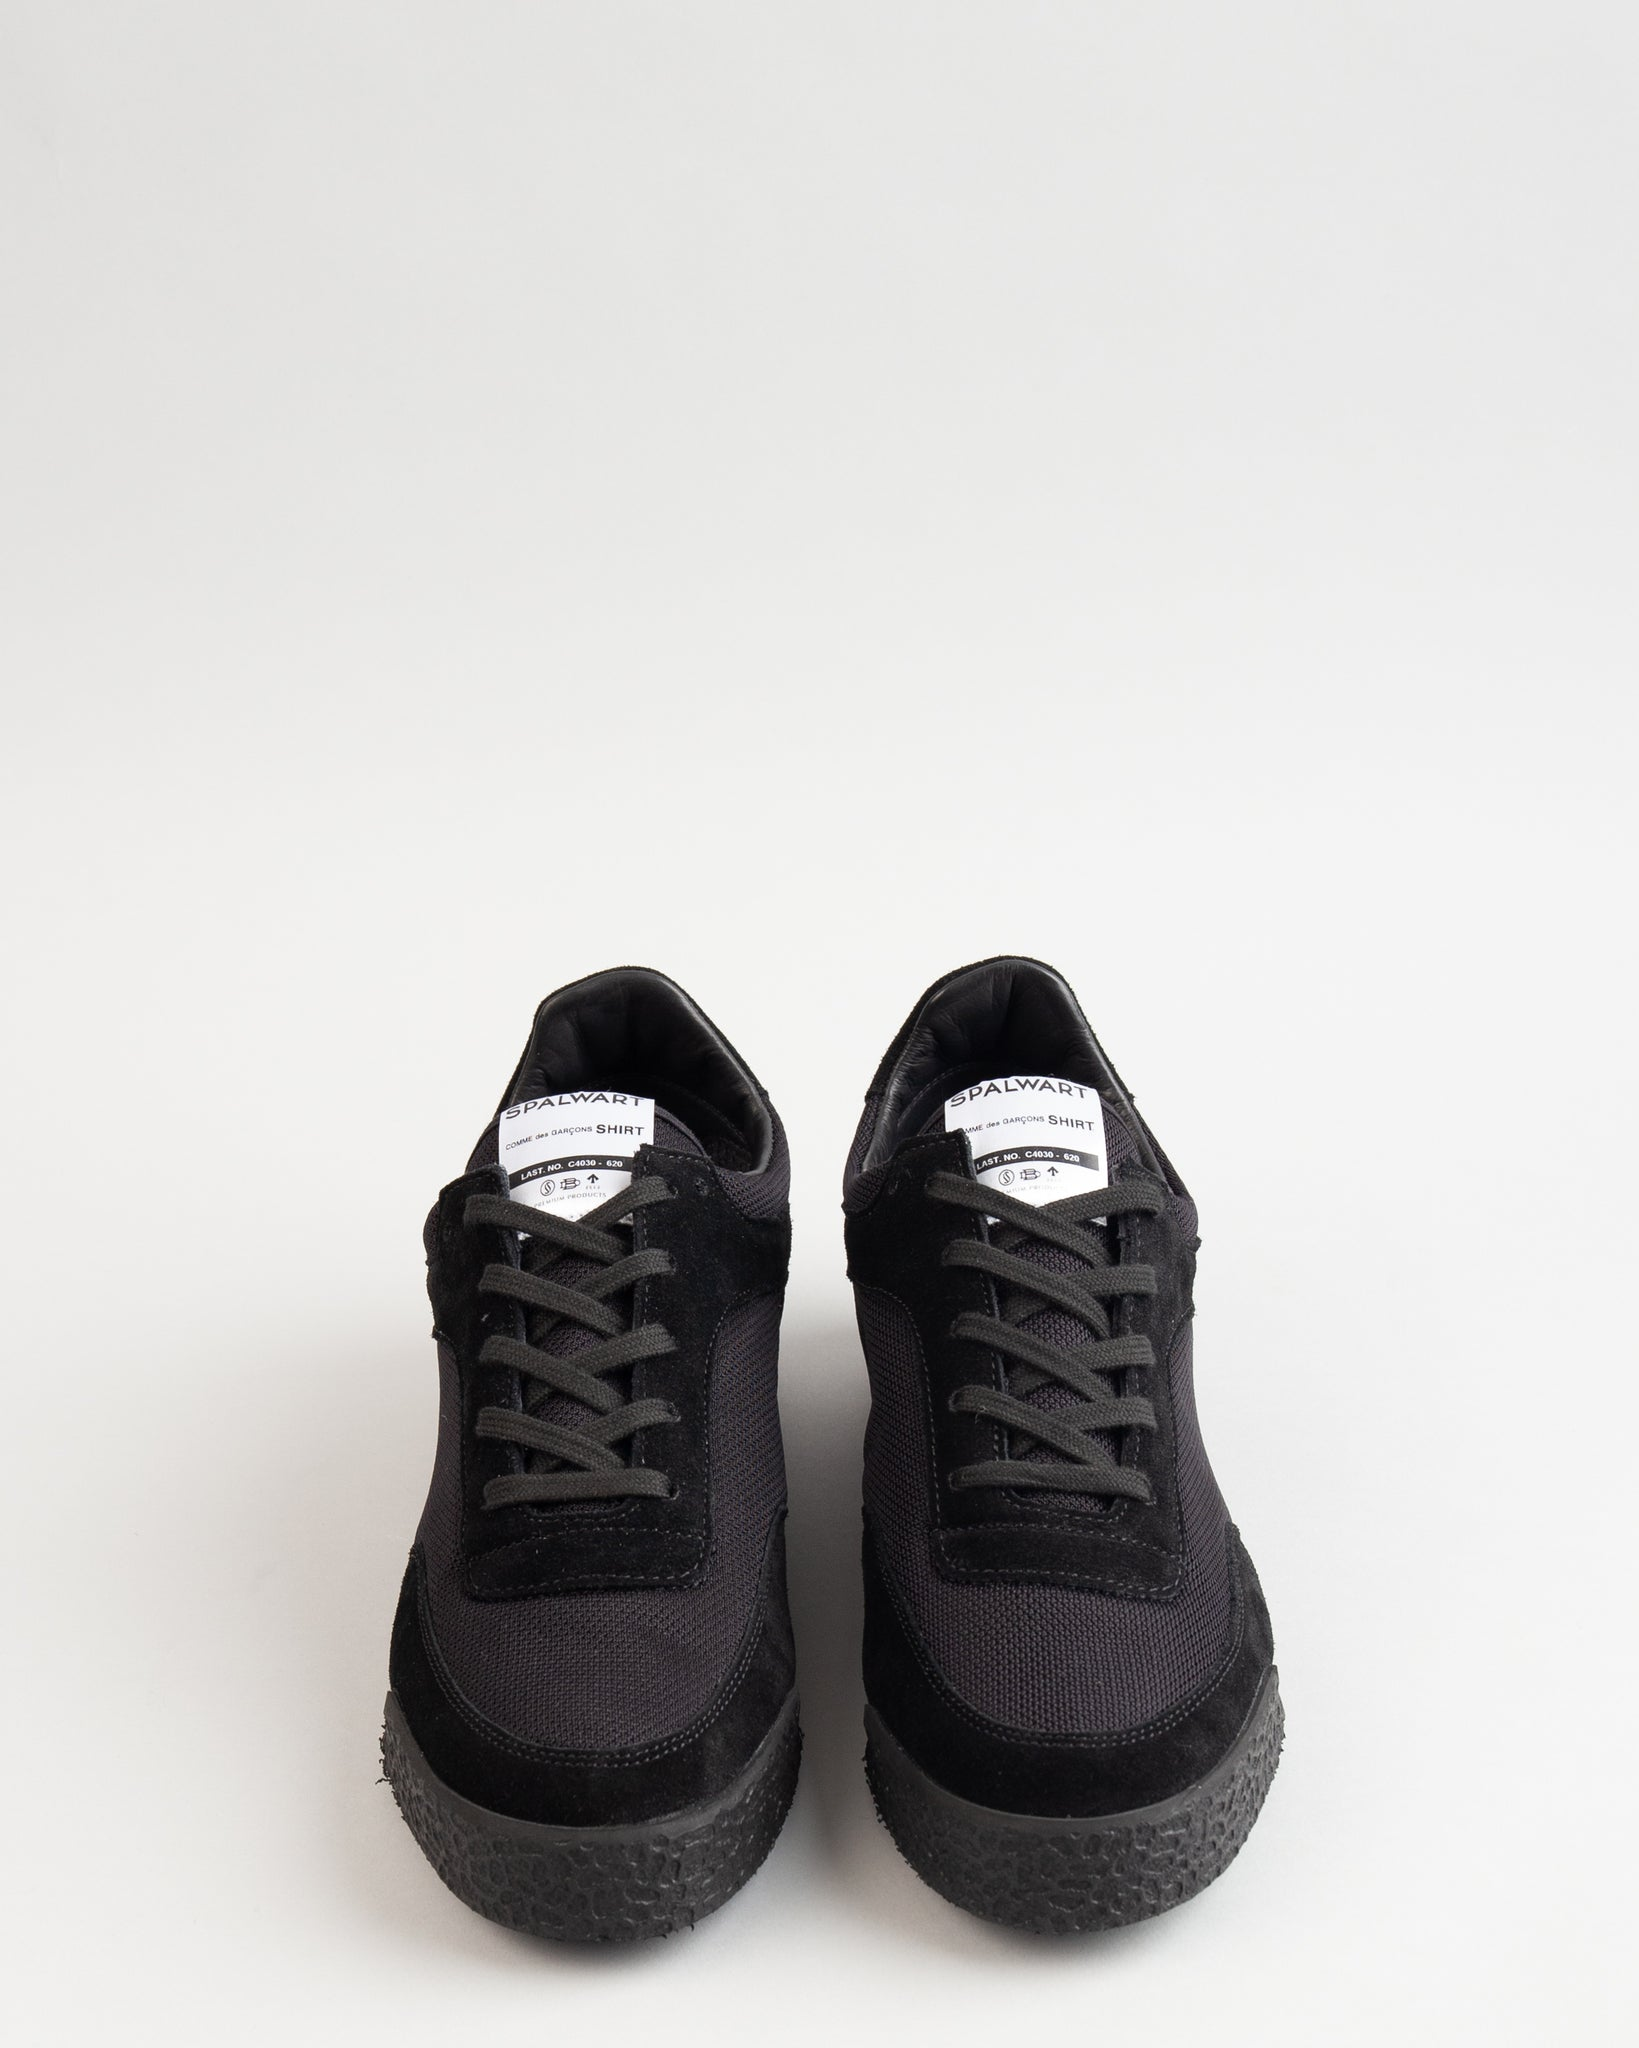 Comme des Garcons SHIRT Pitch Low Black